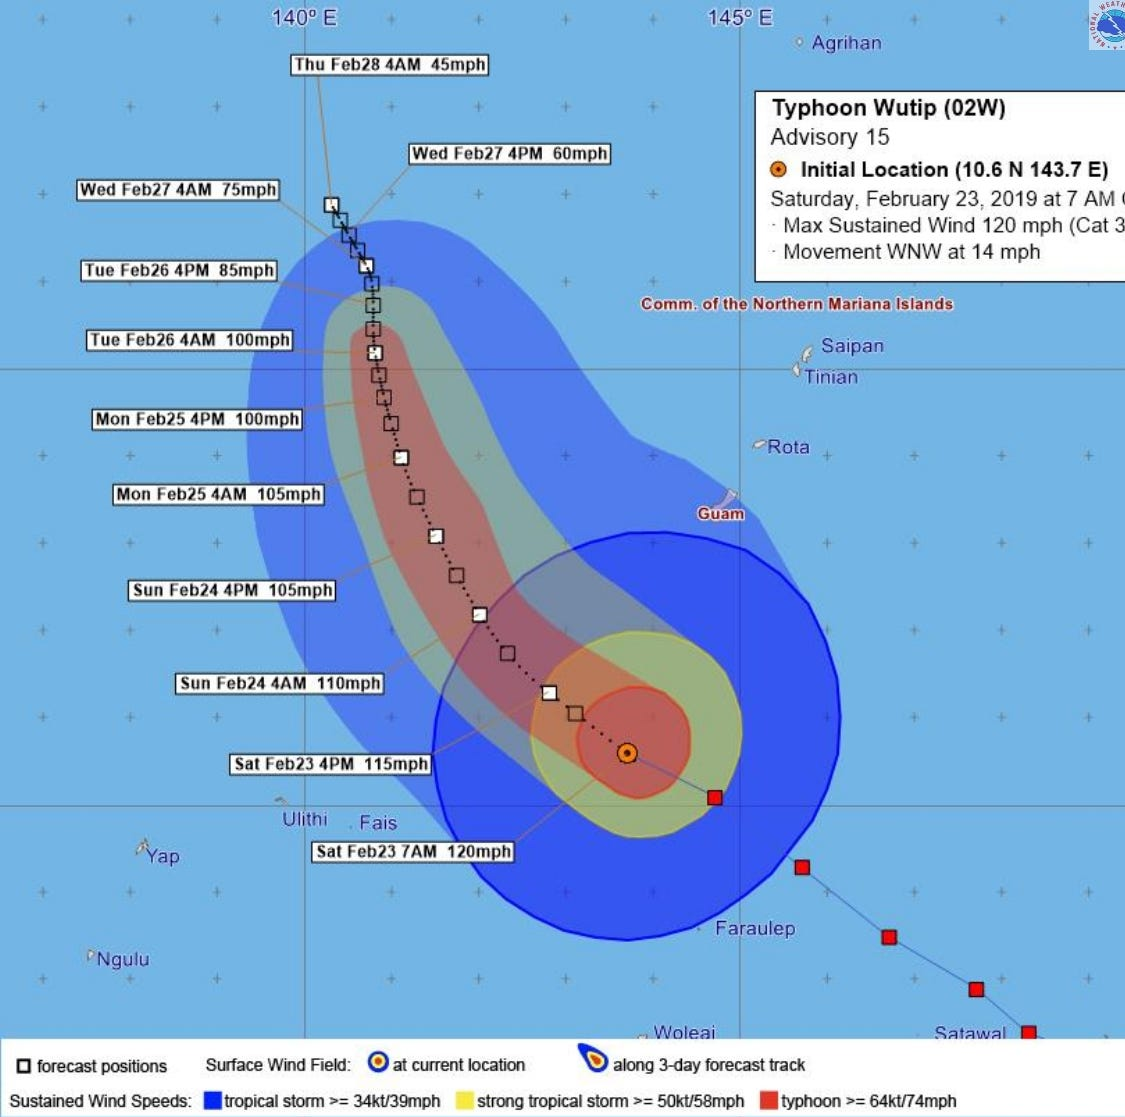 Saturday Typhoon Wutip update: Stay off roads, expect heavy flooding